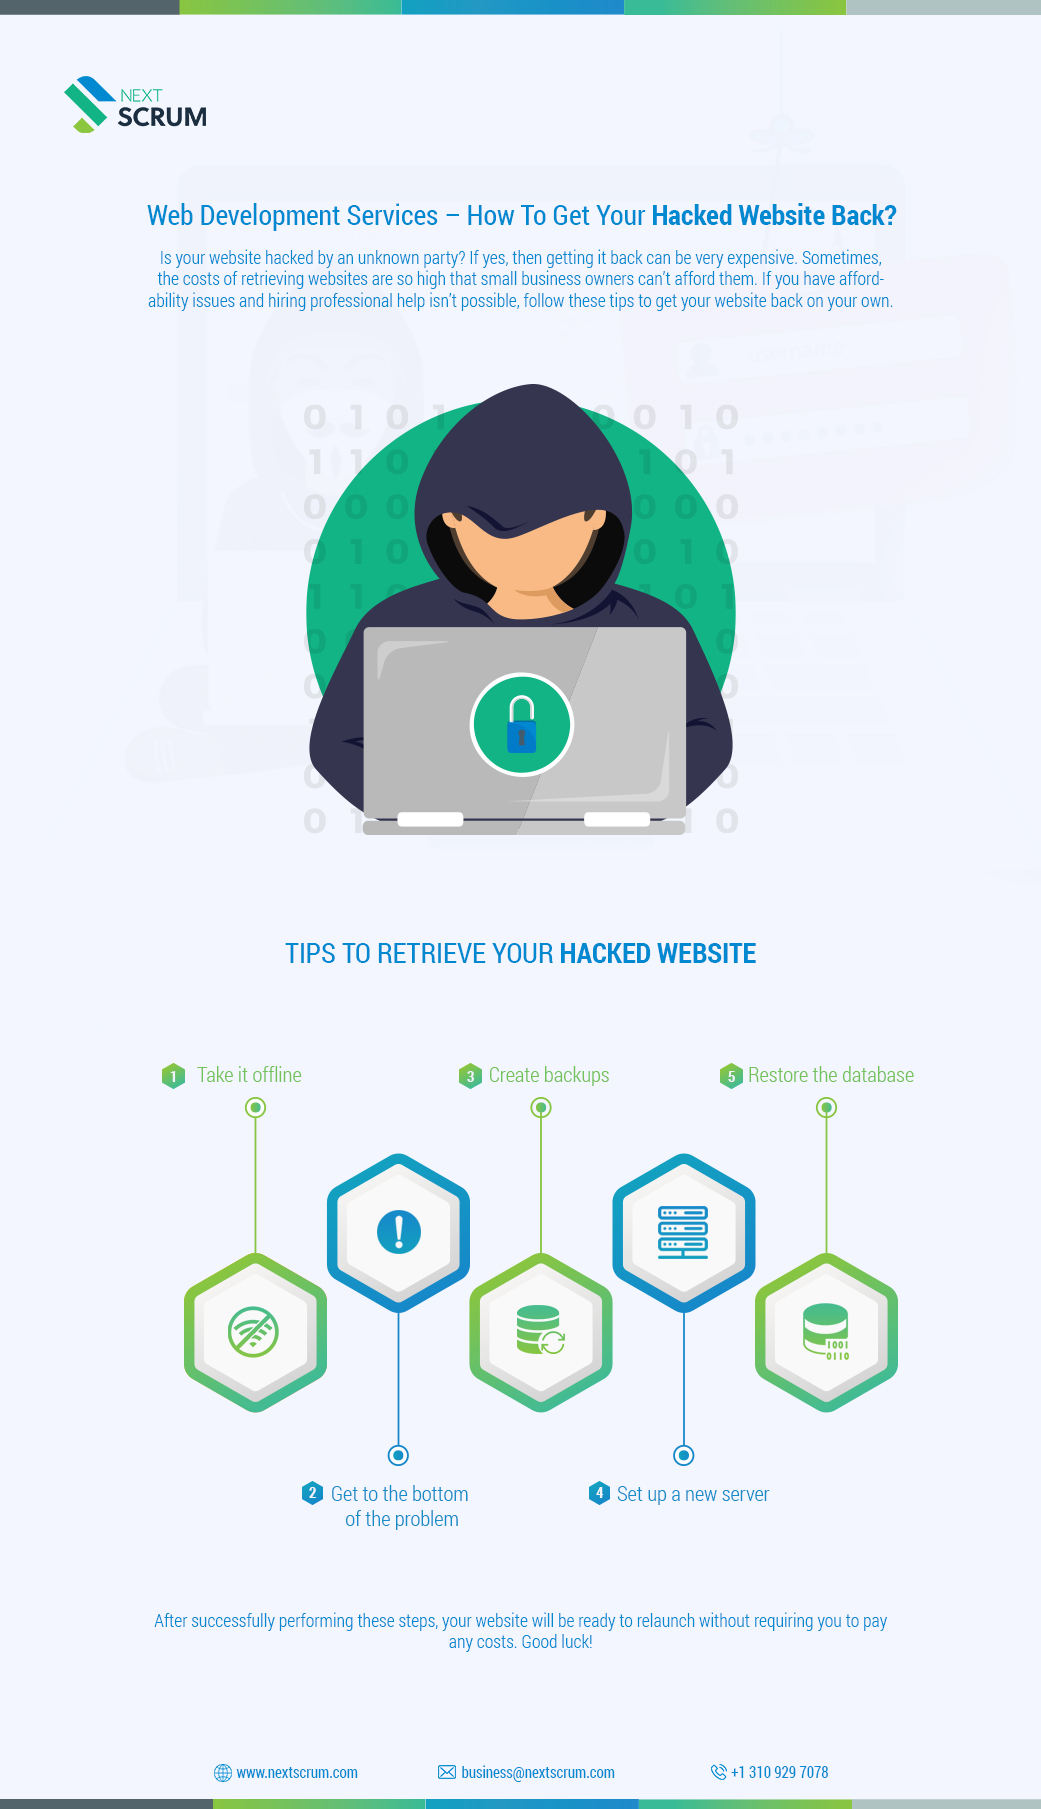 How To Get Your Hacked Website Back? | Web Development Services